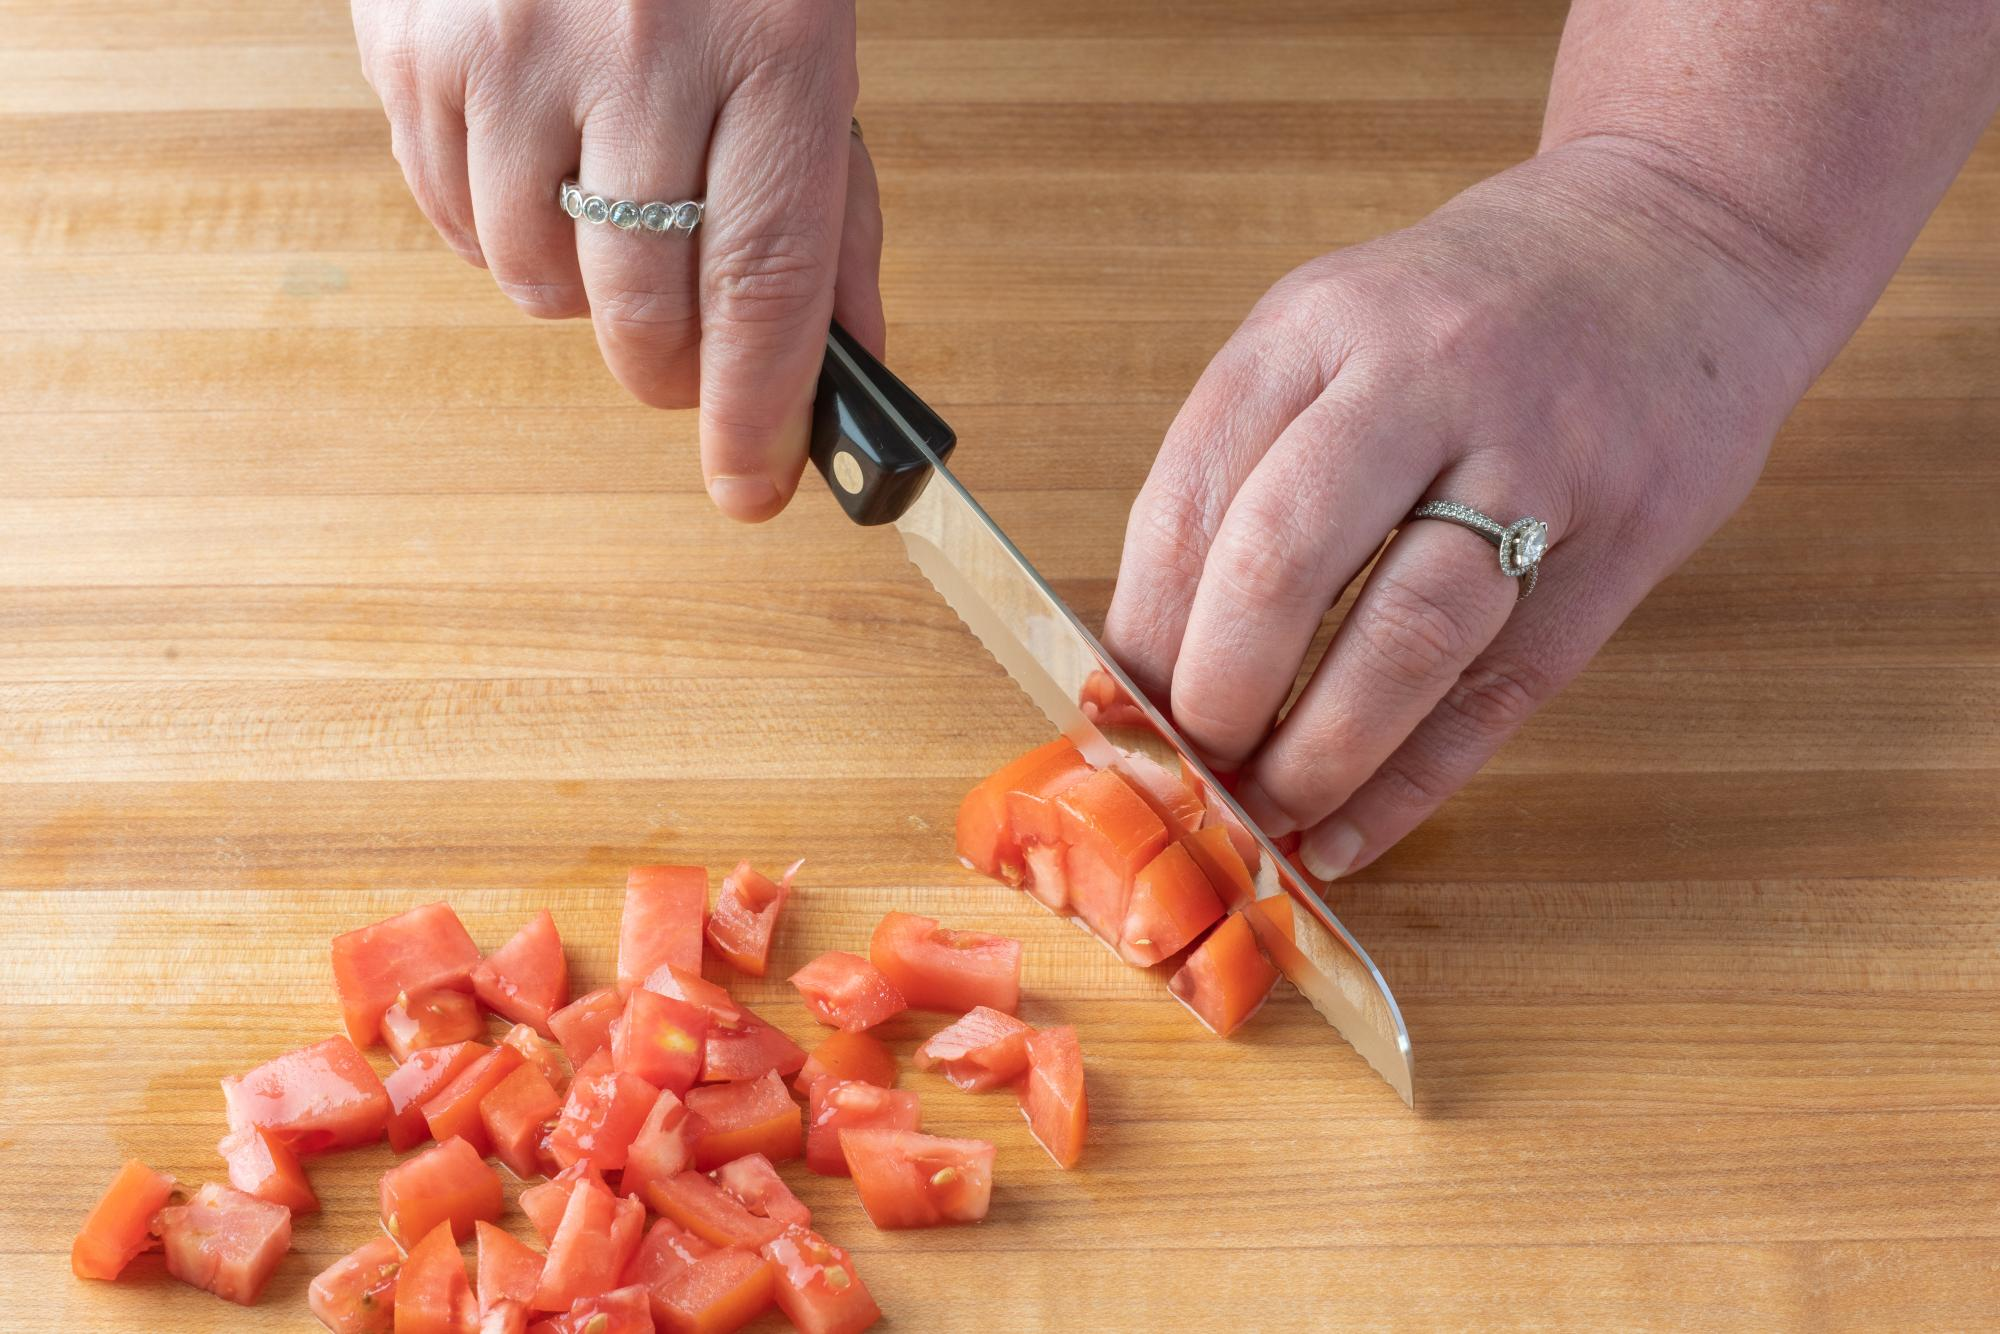 Using a Santoku-Style Trimmer to chop the tomatoes.